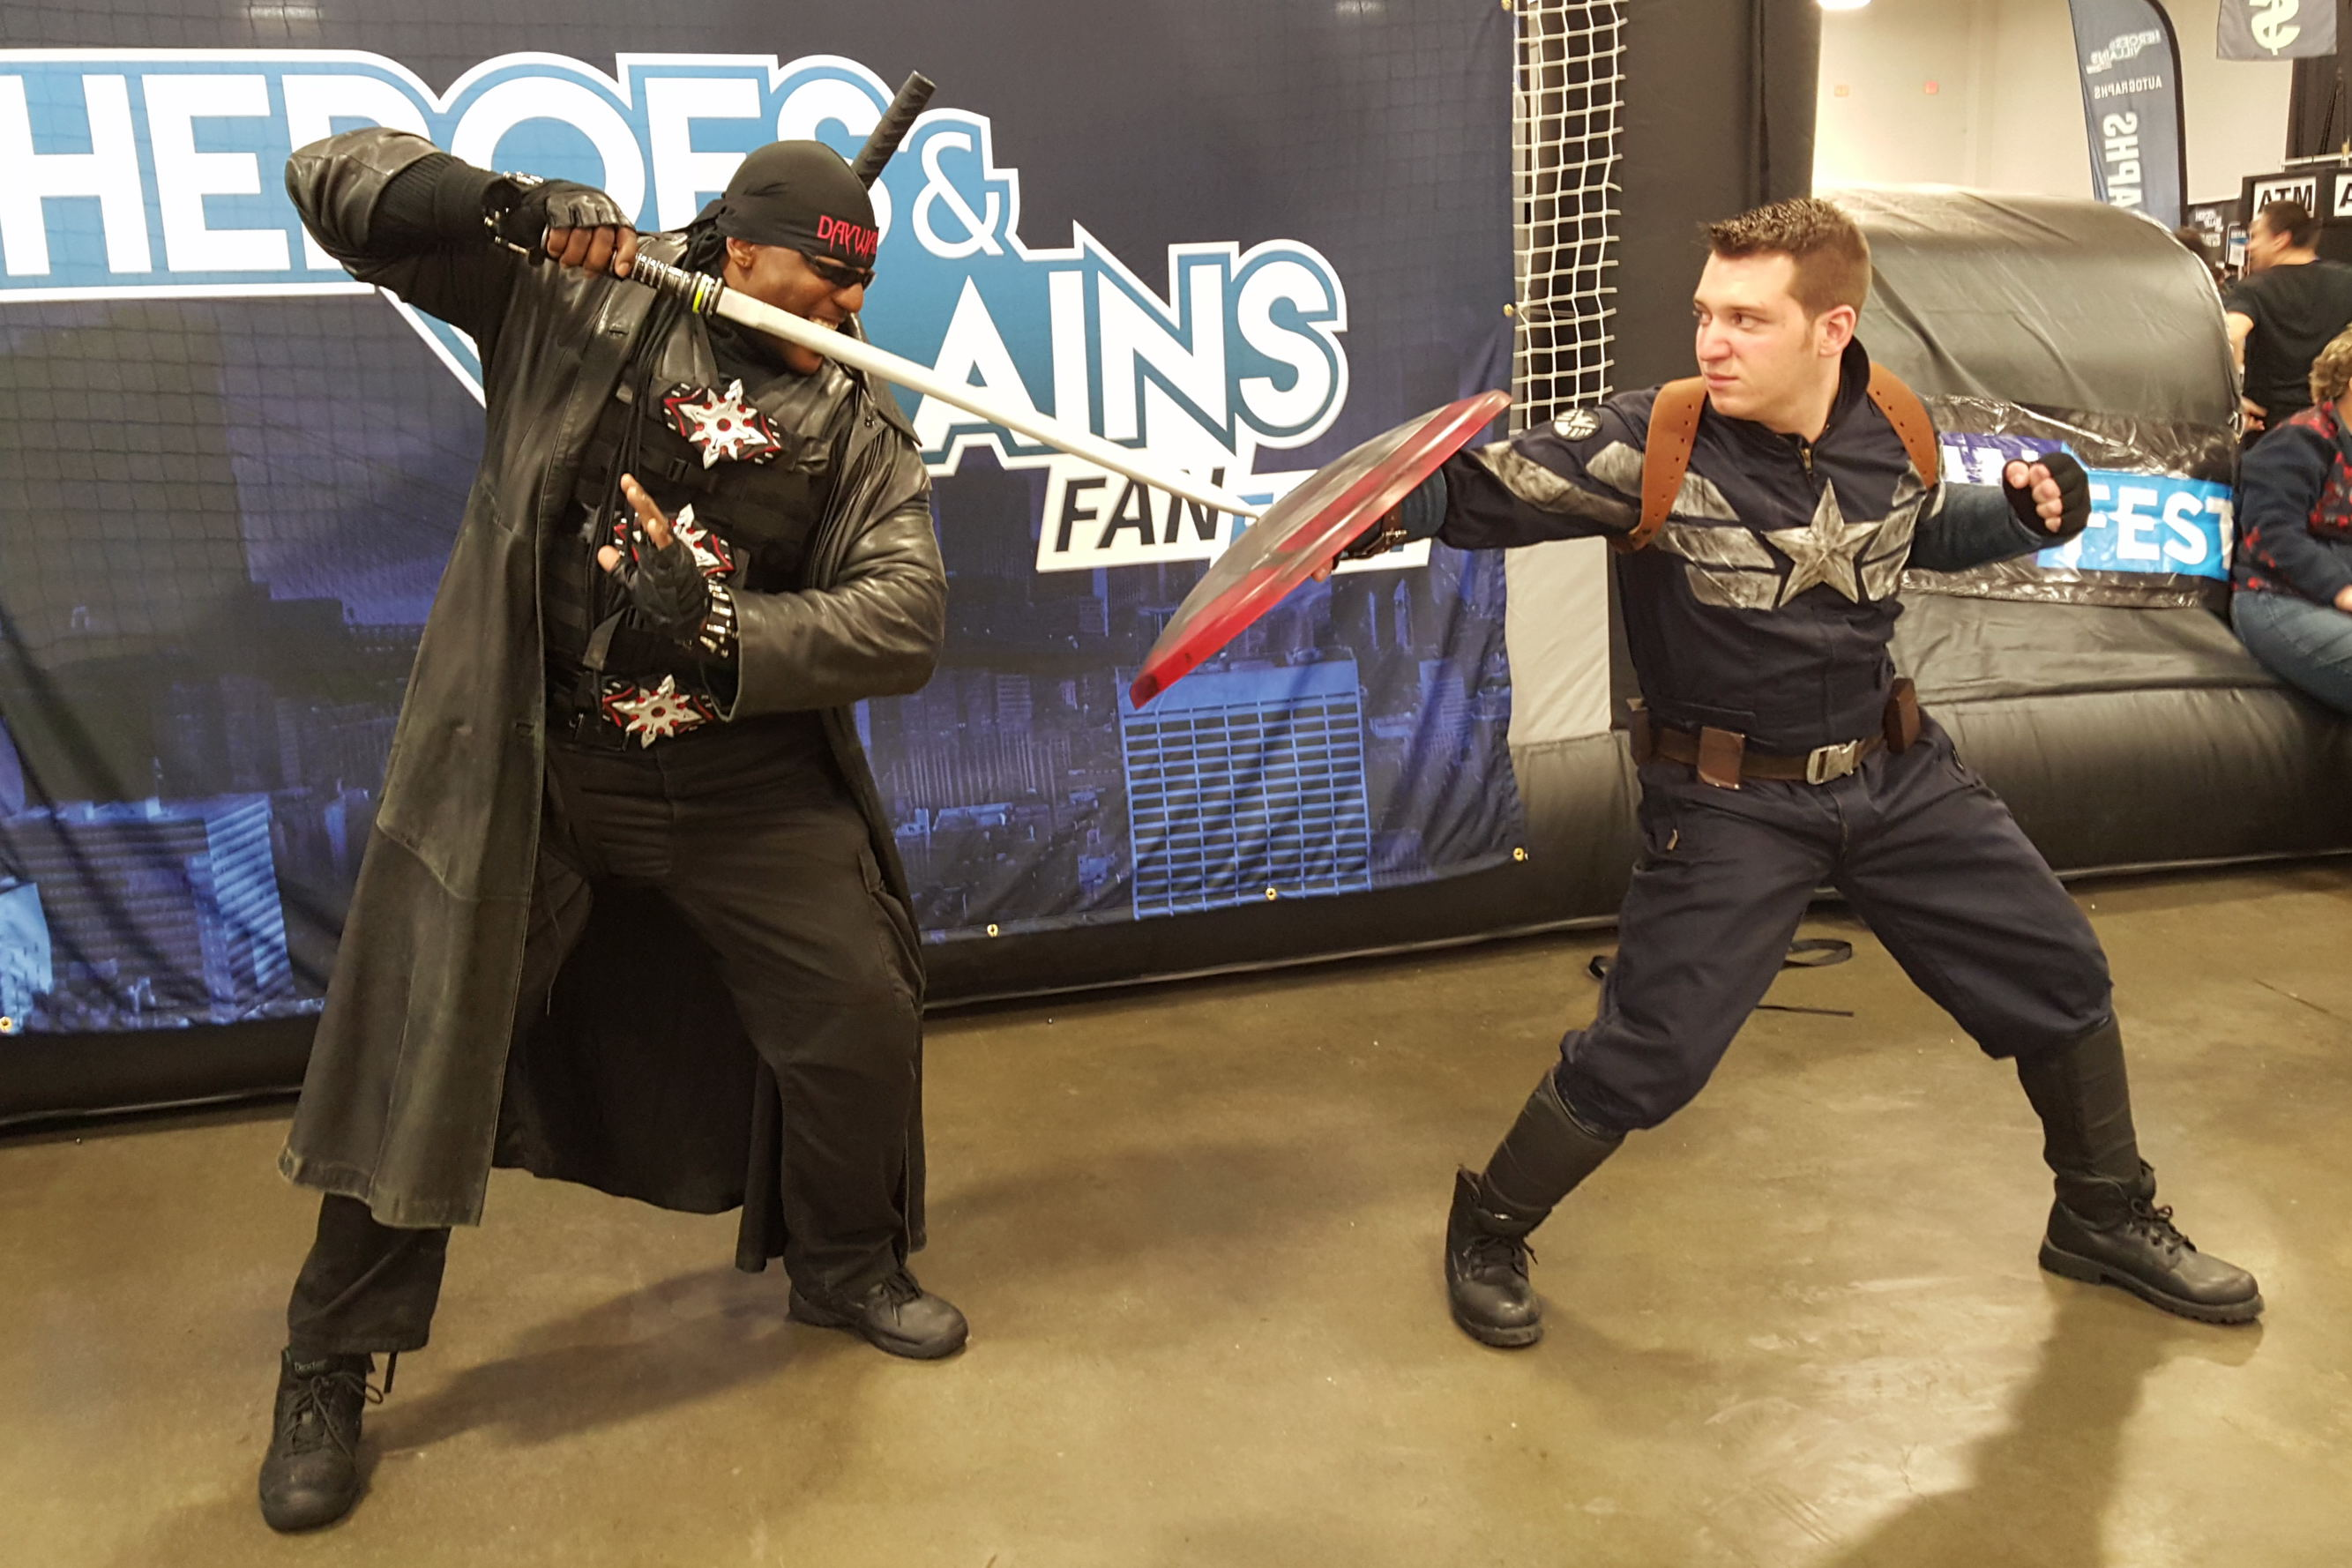 Heroes & Villains Fan Fest HVFF Cosplay